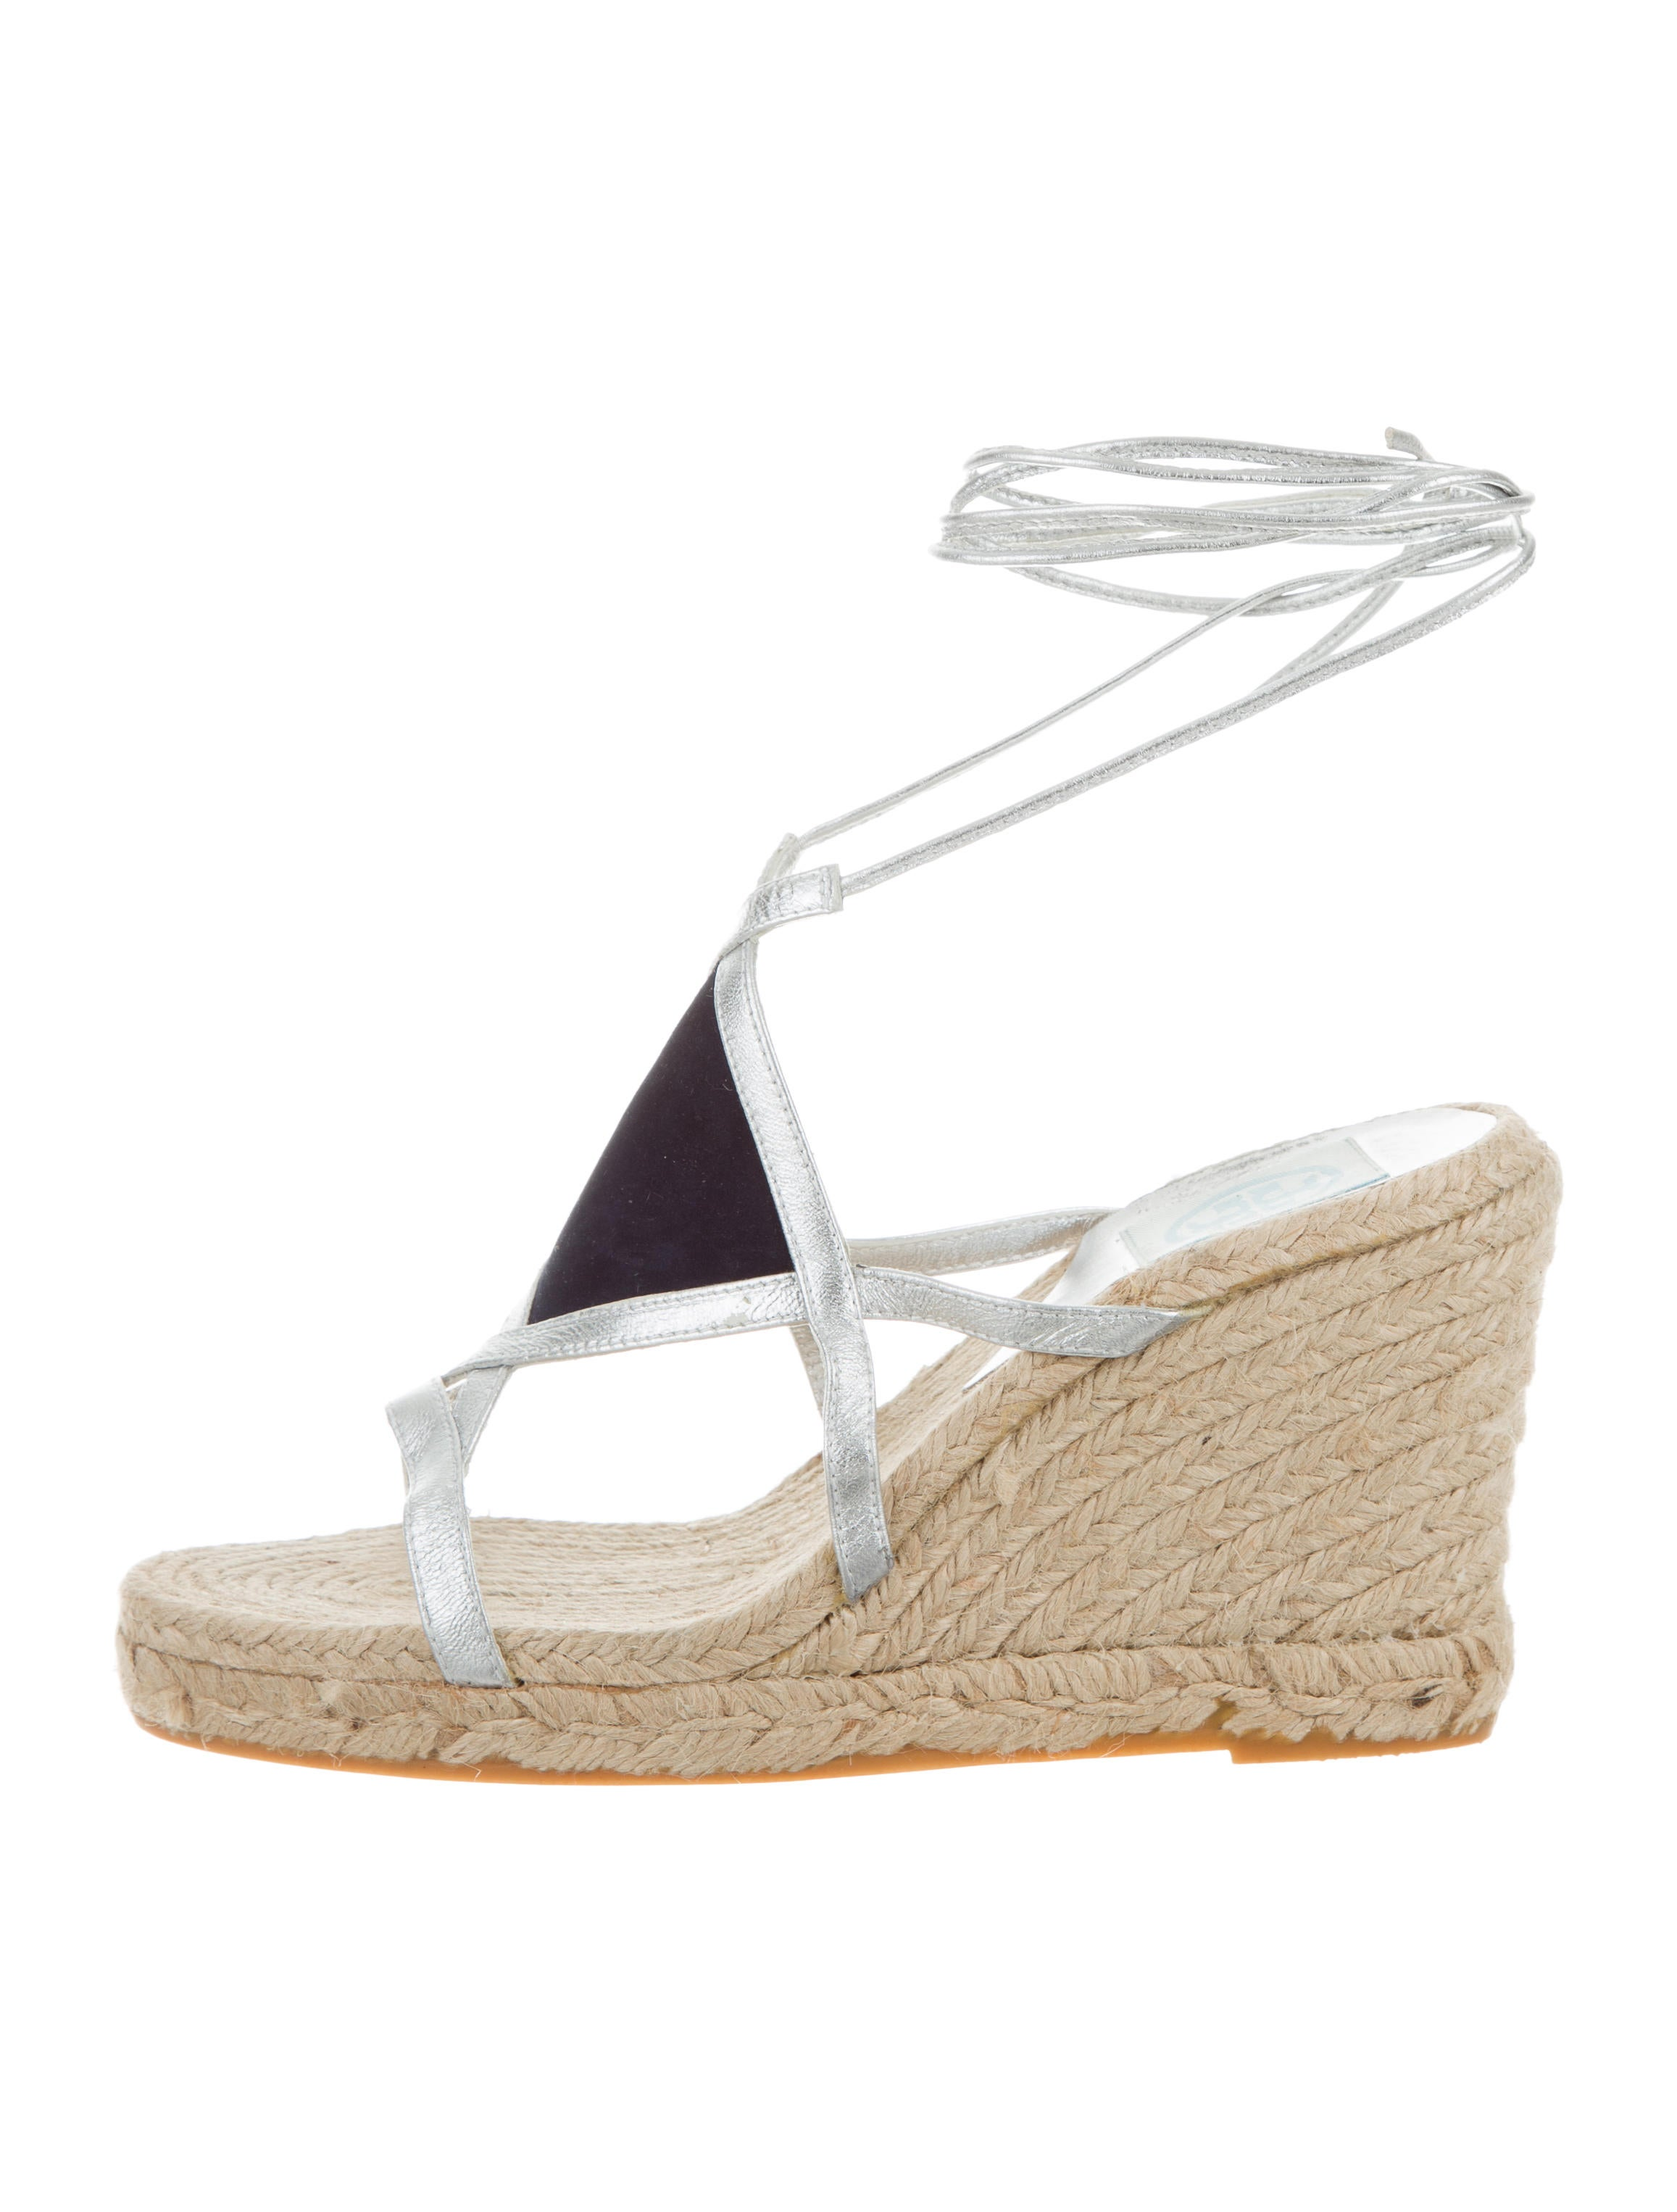 7054dc684d632 Tory Burch Espadrille Wedge Sandals - Shoes - WTO117711